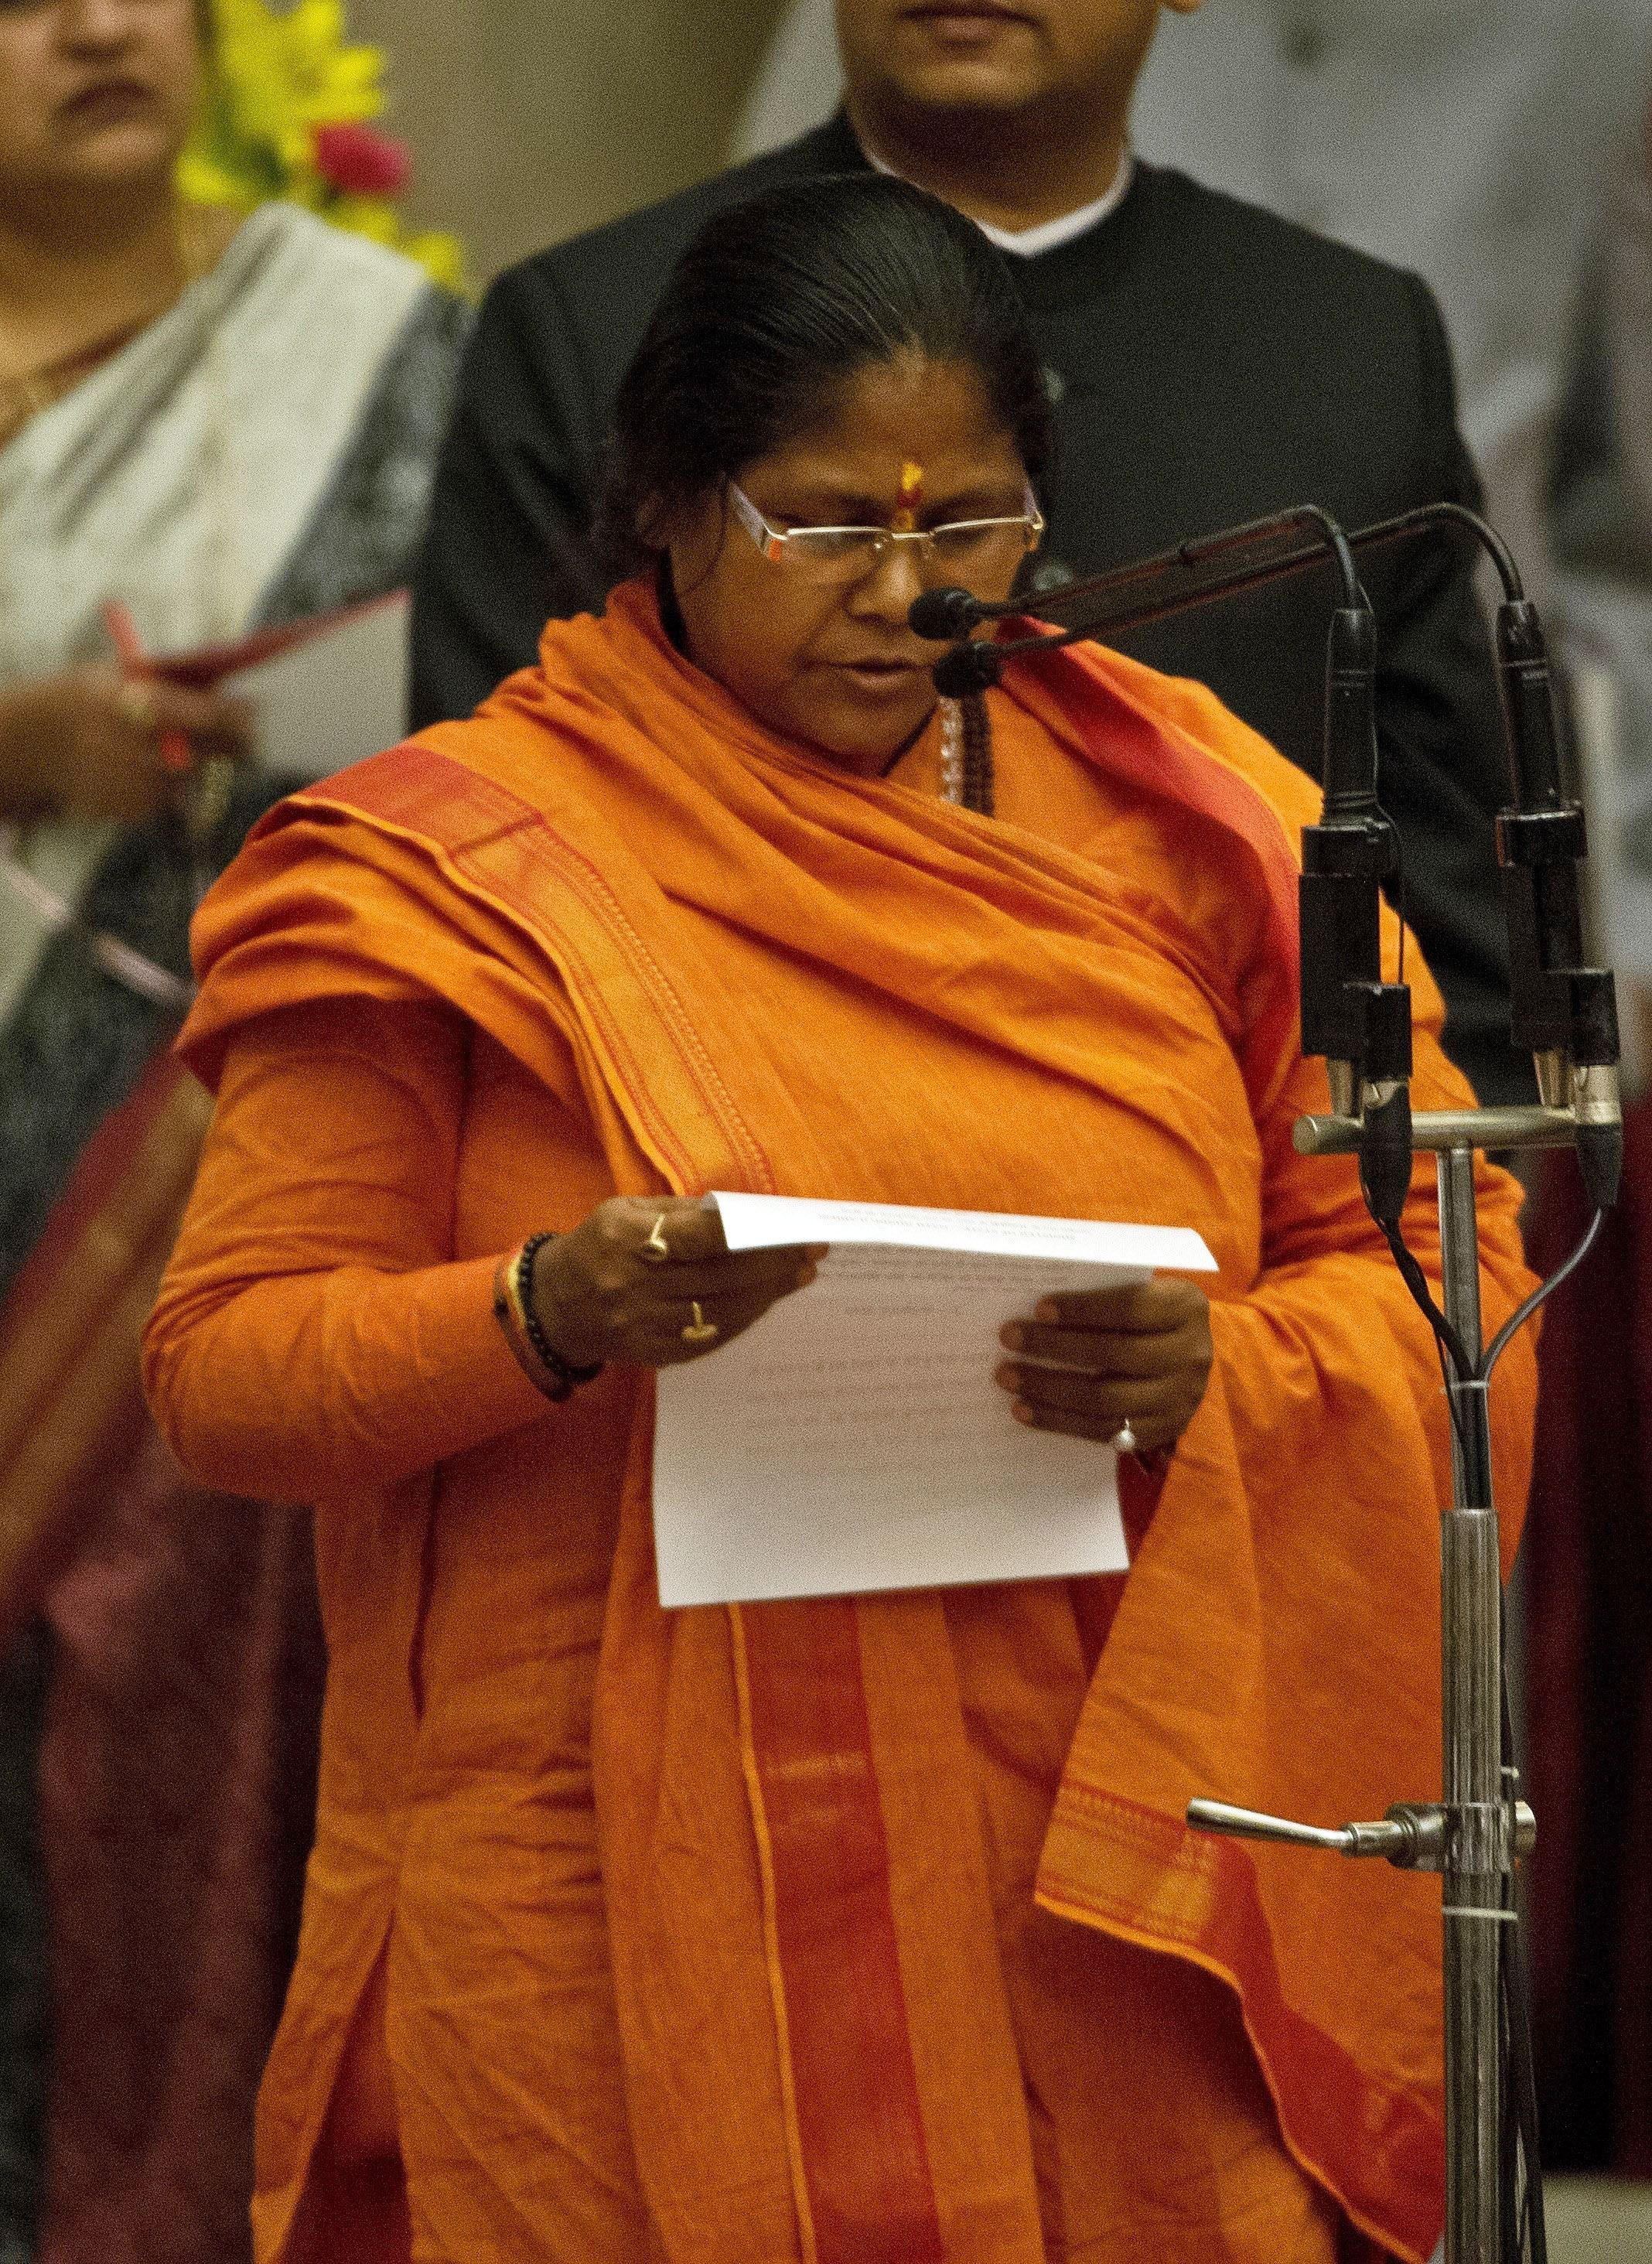 Bharatiya Janata Party leader Niranjan Jyoti takes an oath as a Cabinet minister during a swearing-in ceremony at the presidential palace in New Delhi on Nov. 9, 2014